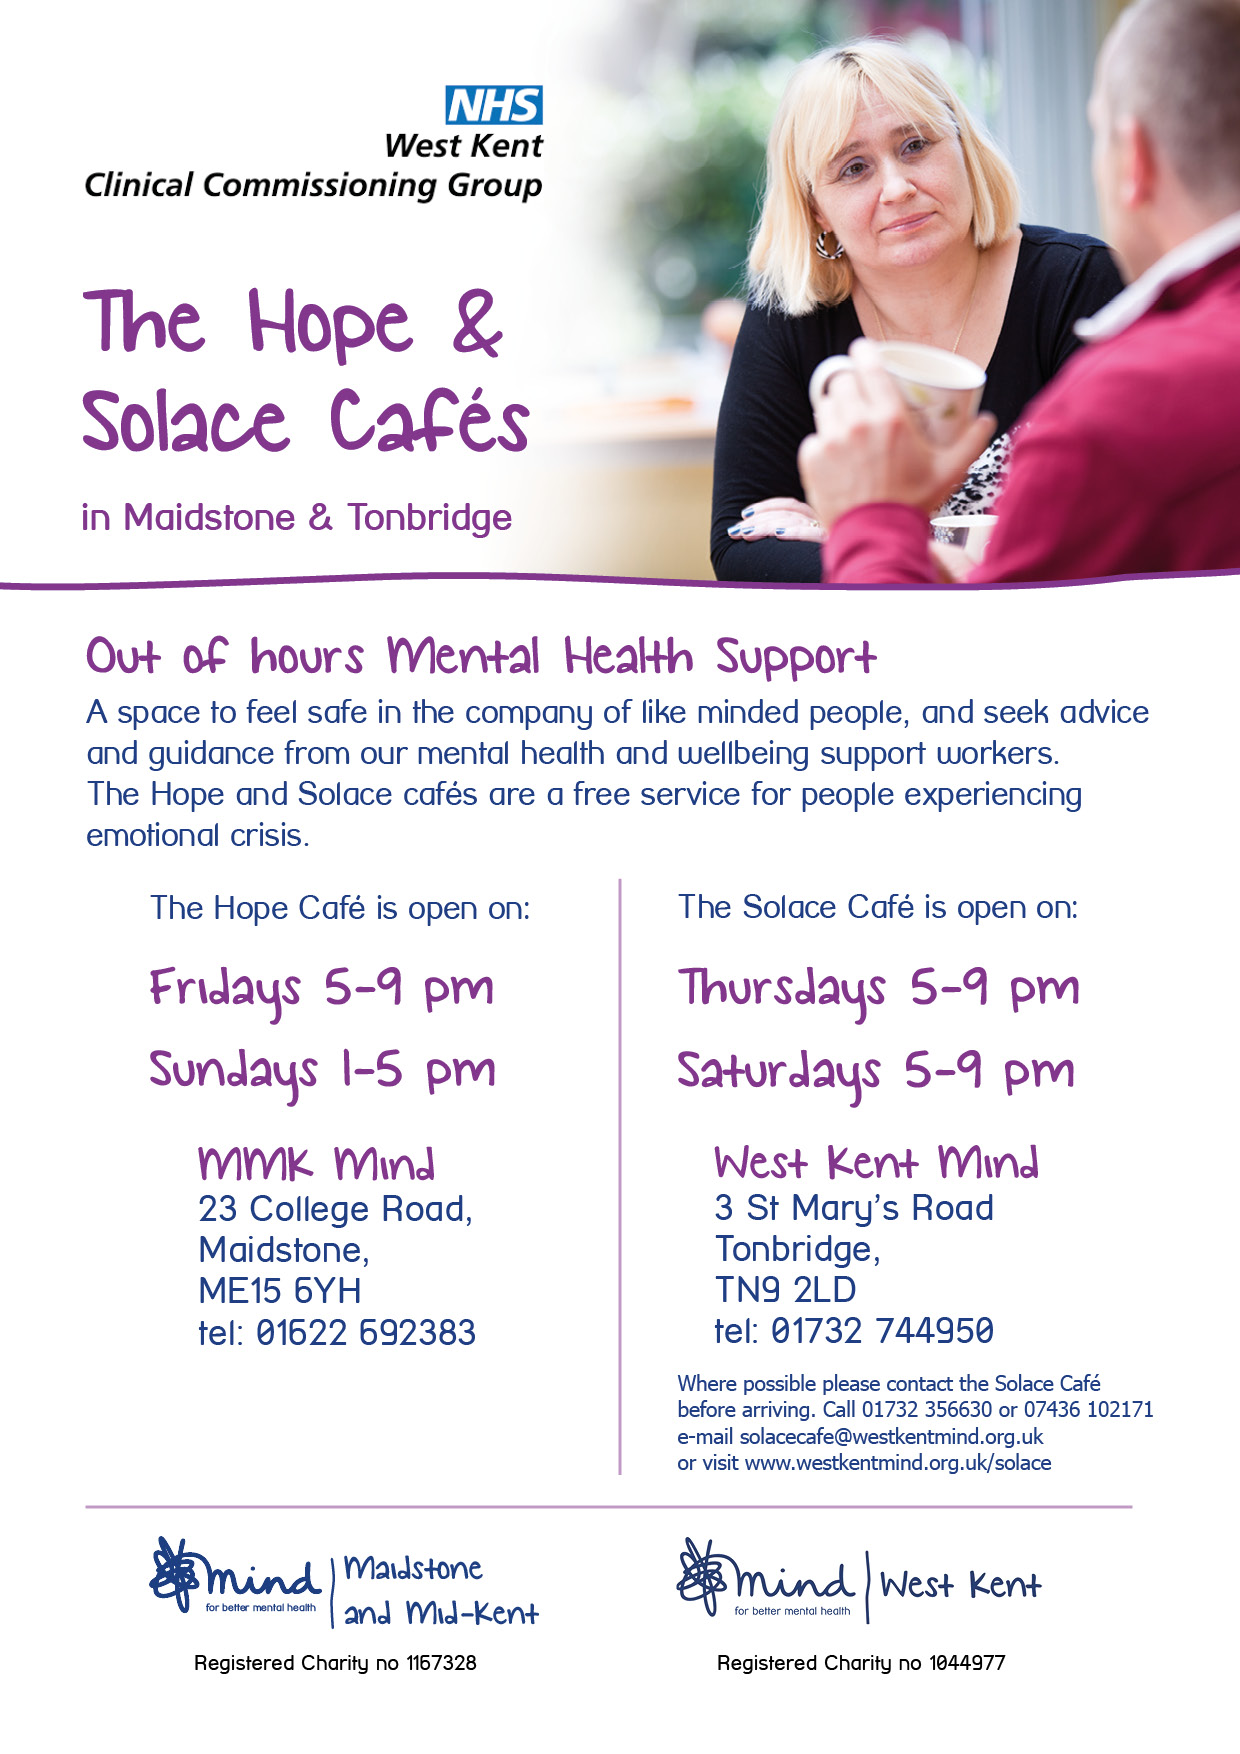 Hope Café - Our Cafe runs in Maidstone on Fridays from 5pm til 9pm, and Sundays from 1pm til 5pm. The Solace Cafe runs on Thursdays from 5pm - 9pm, and Saturdays from 5pm - 9pm.